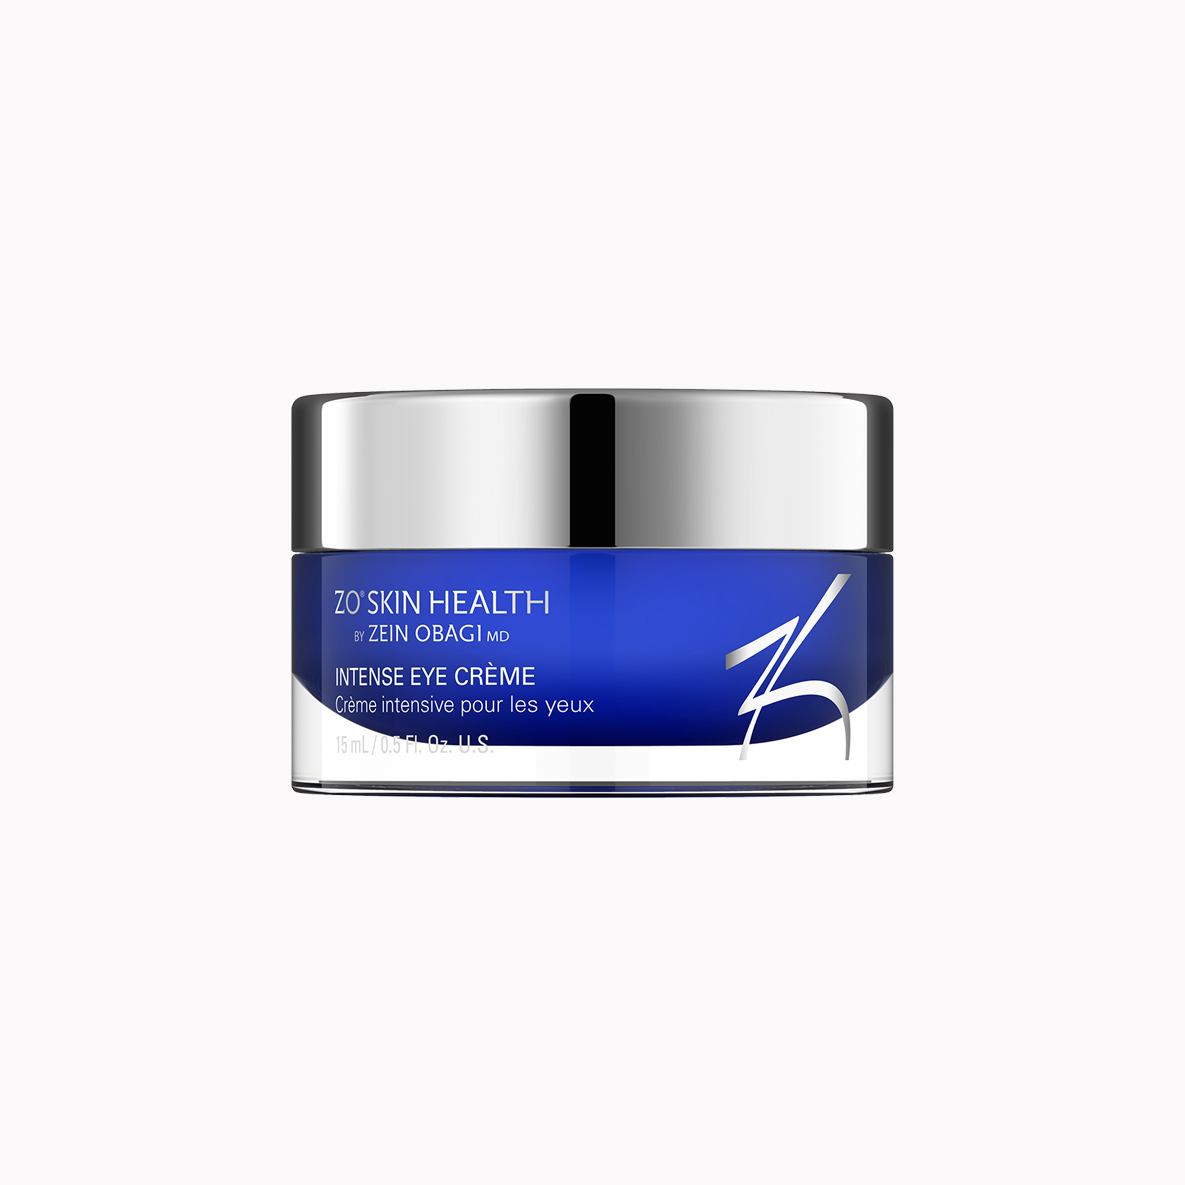 Dermanet.no - ZO Skin Health Intense Eye Creme